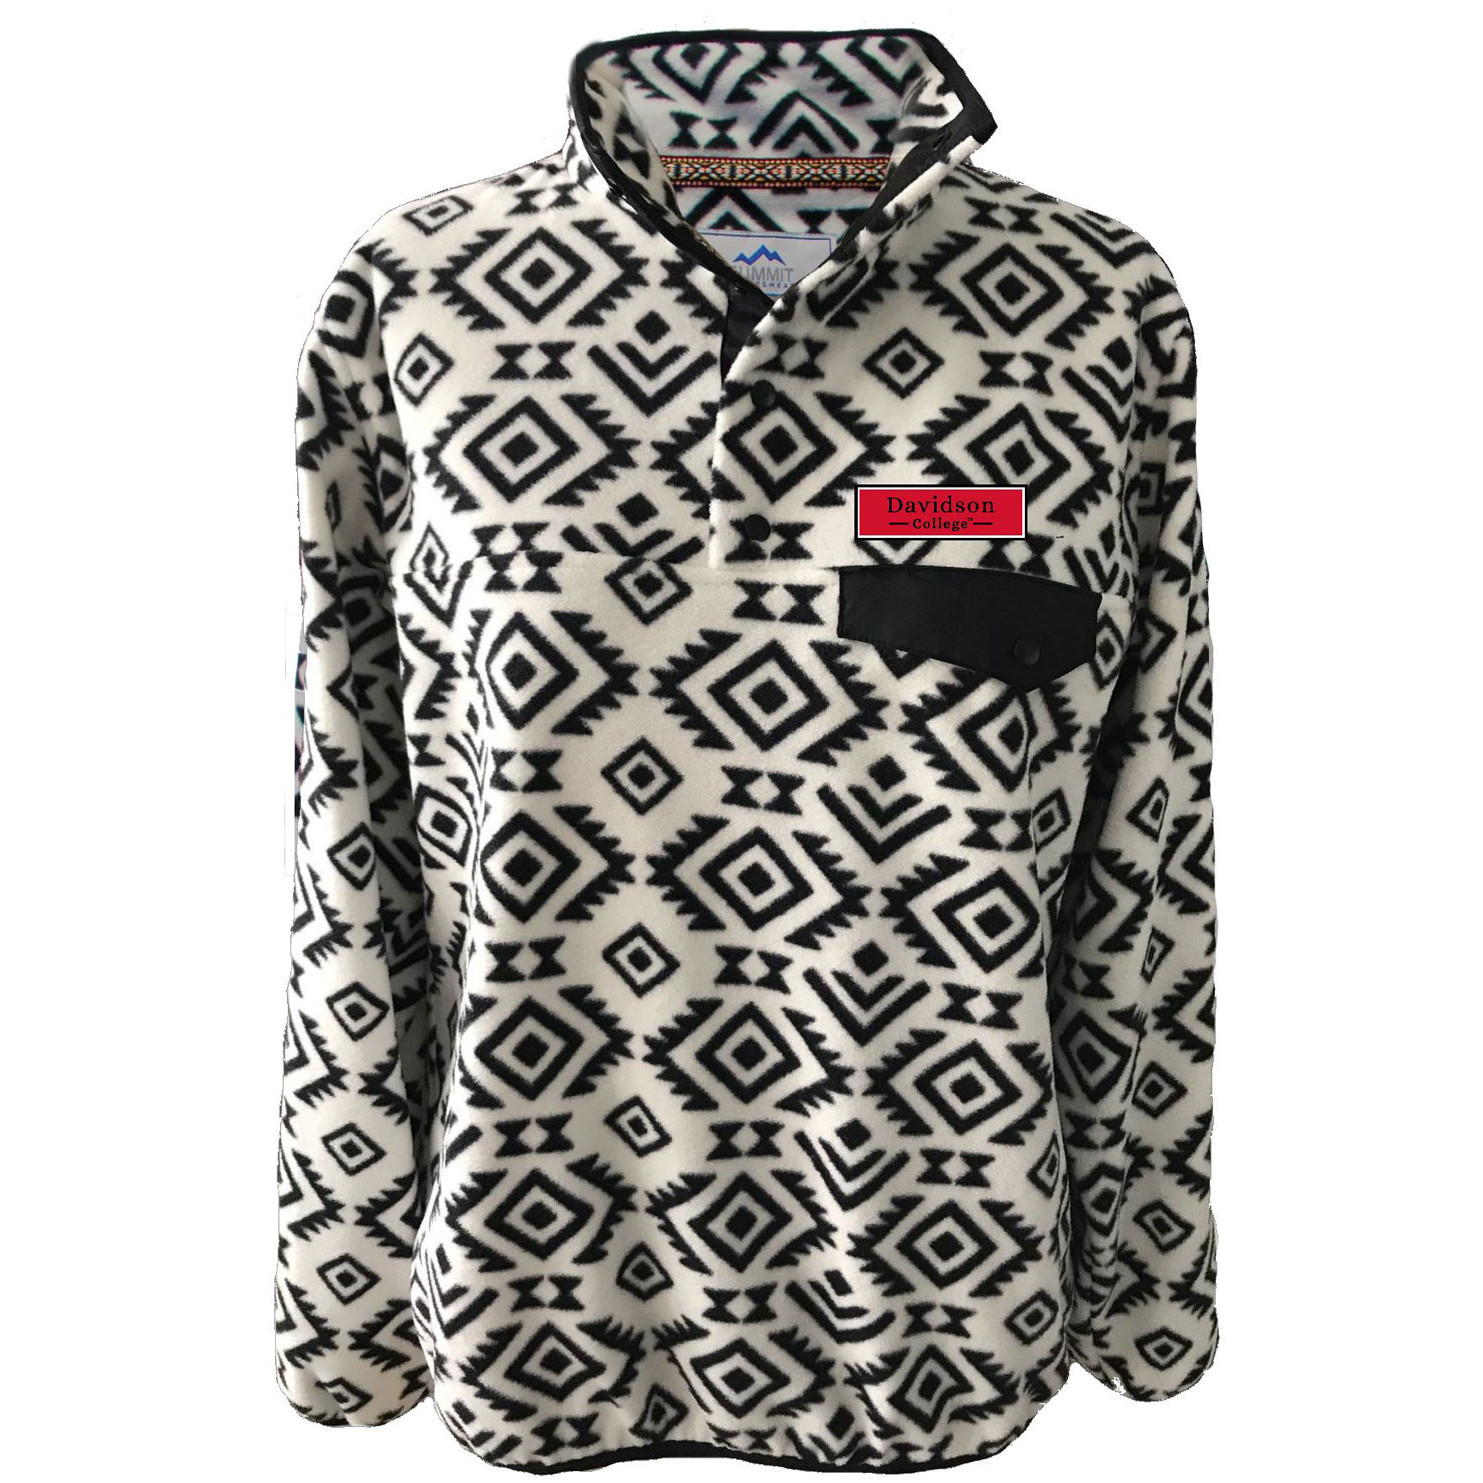 Image For Women's Jacket Patterned Fleece - Tribal - Davidson Patch